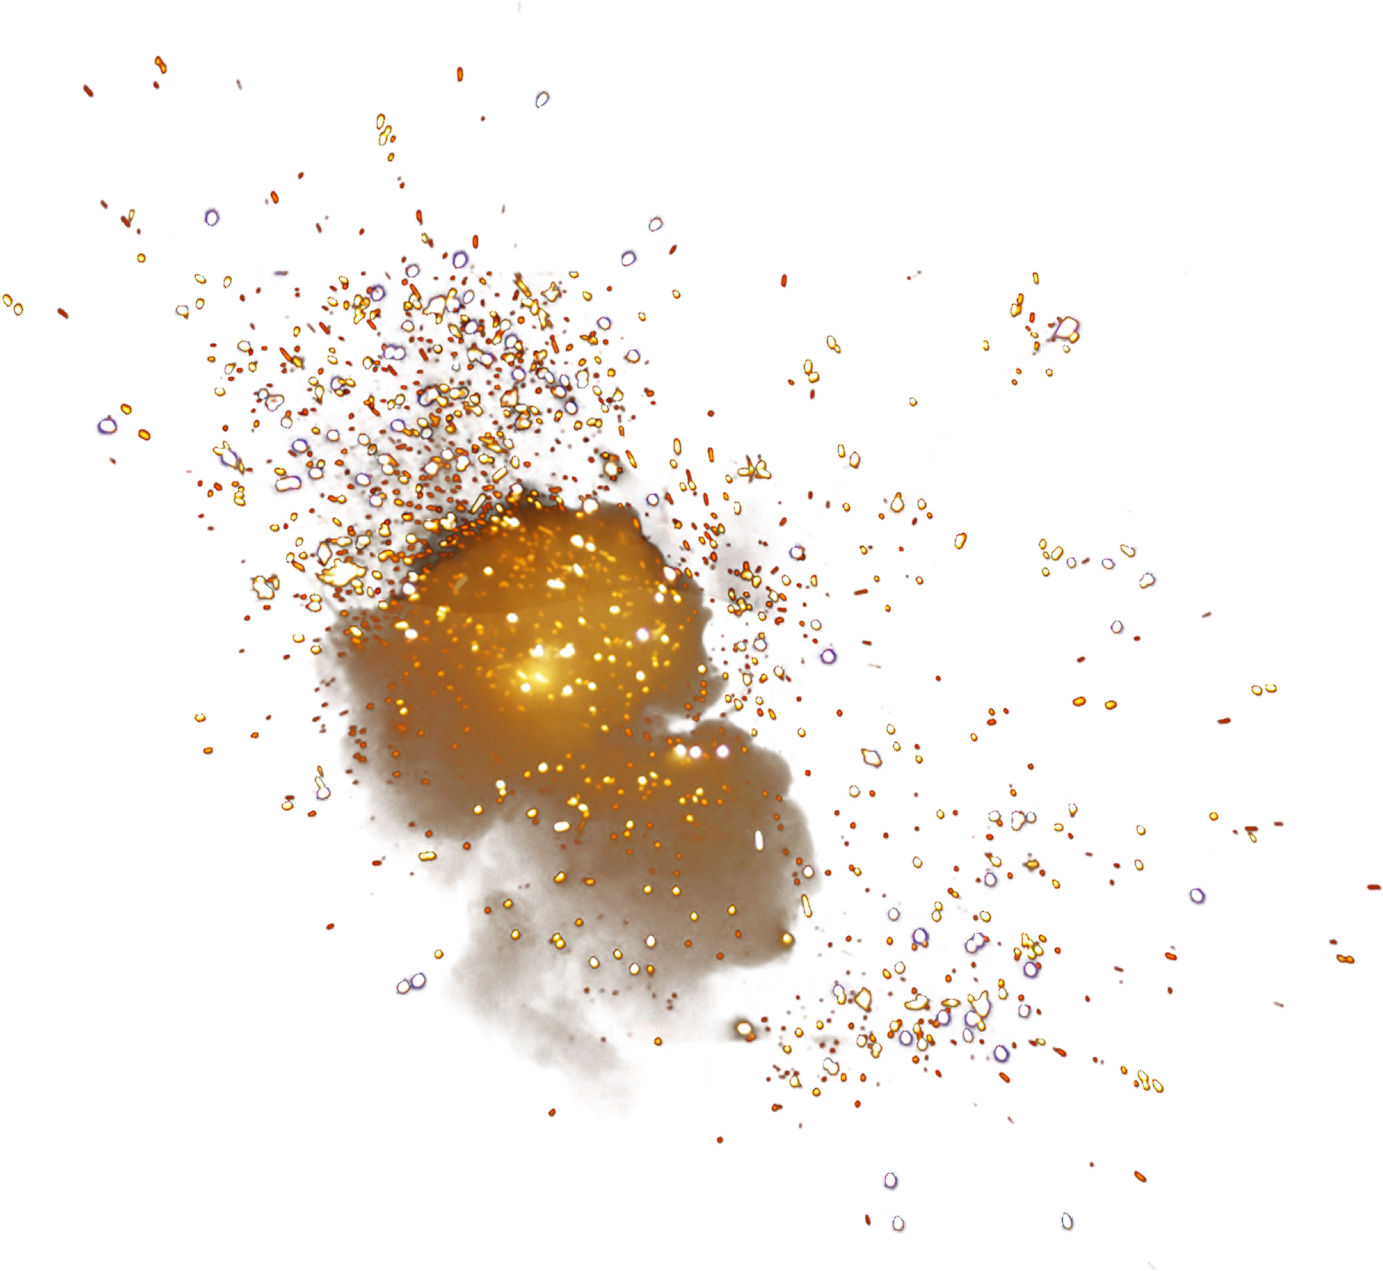 Png particles. Explosion particle light picture